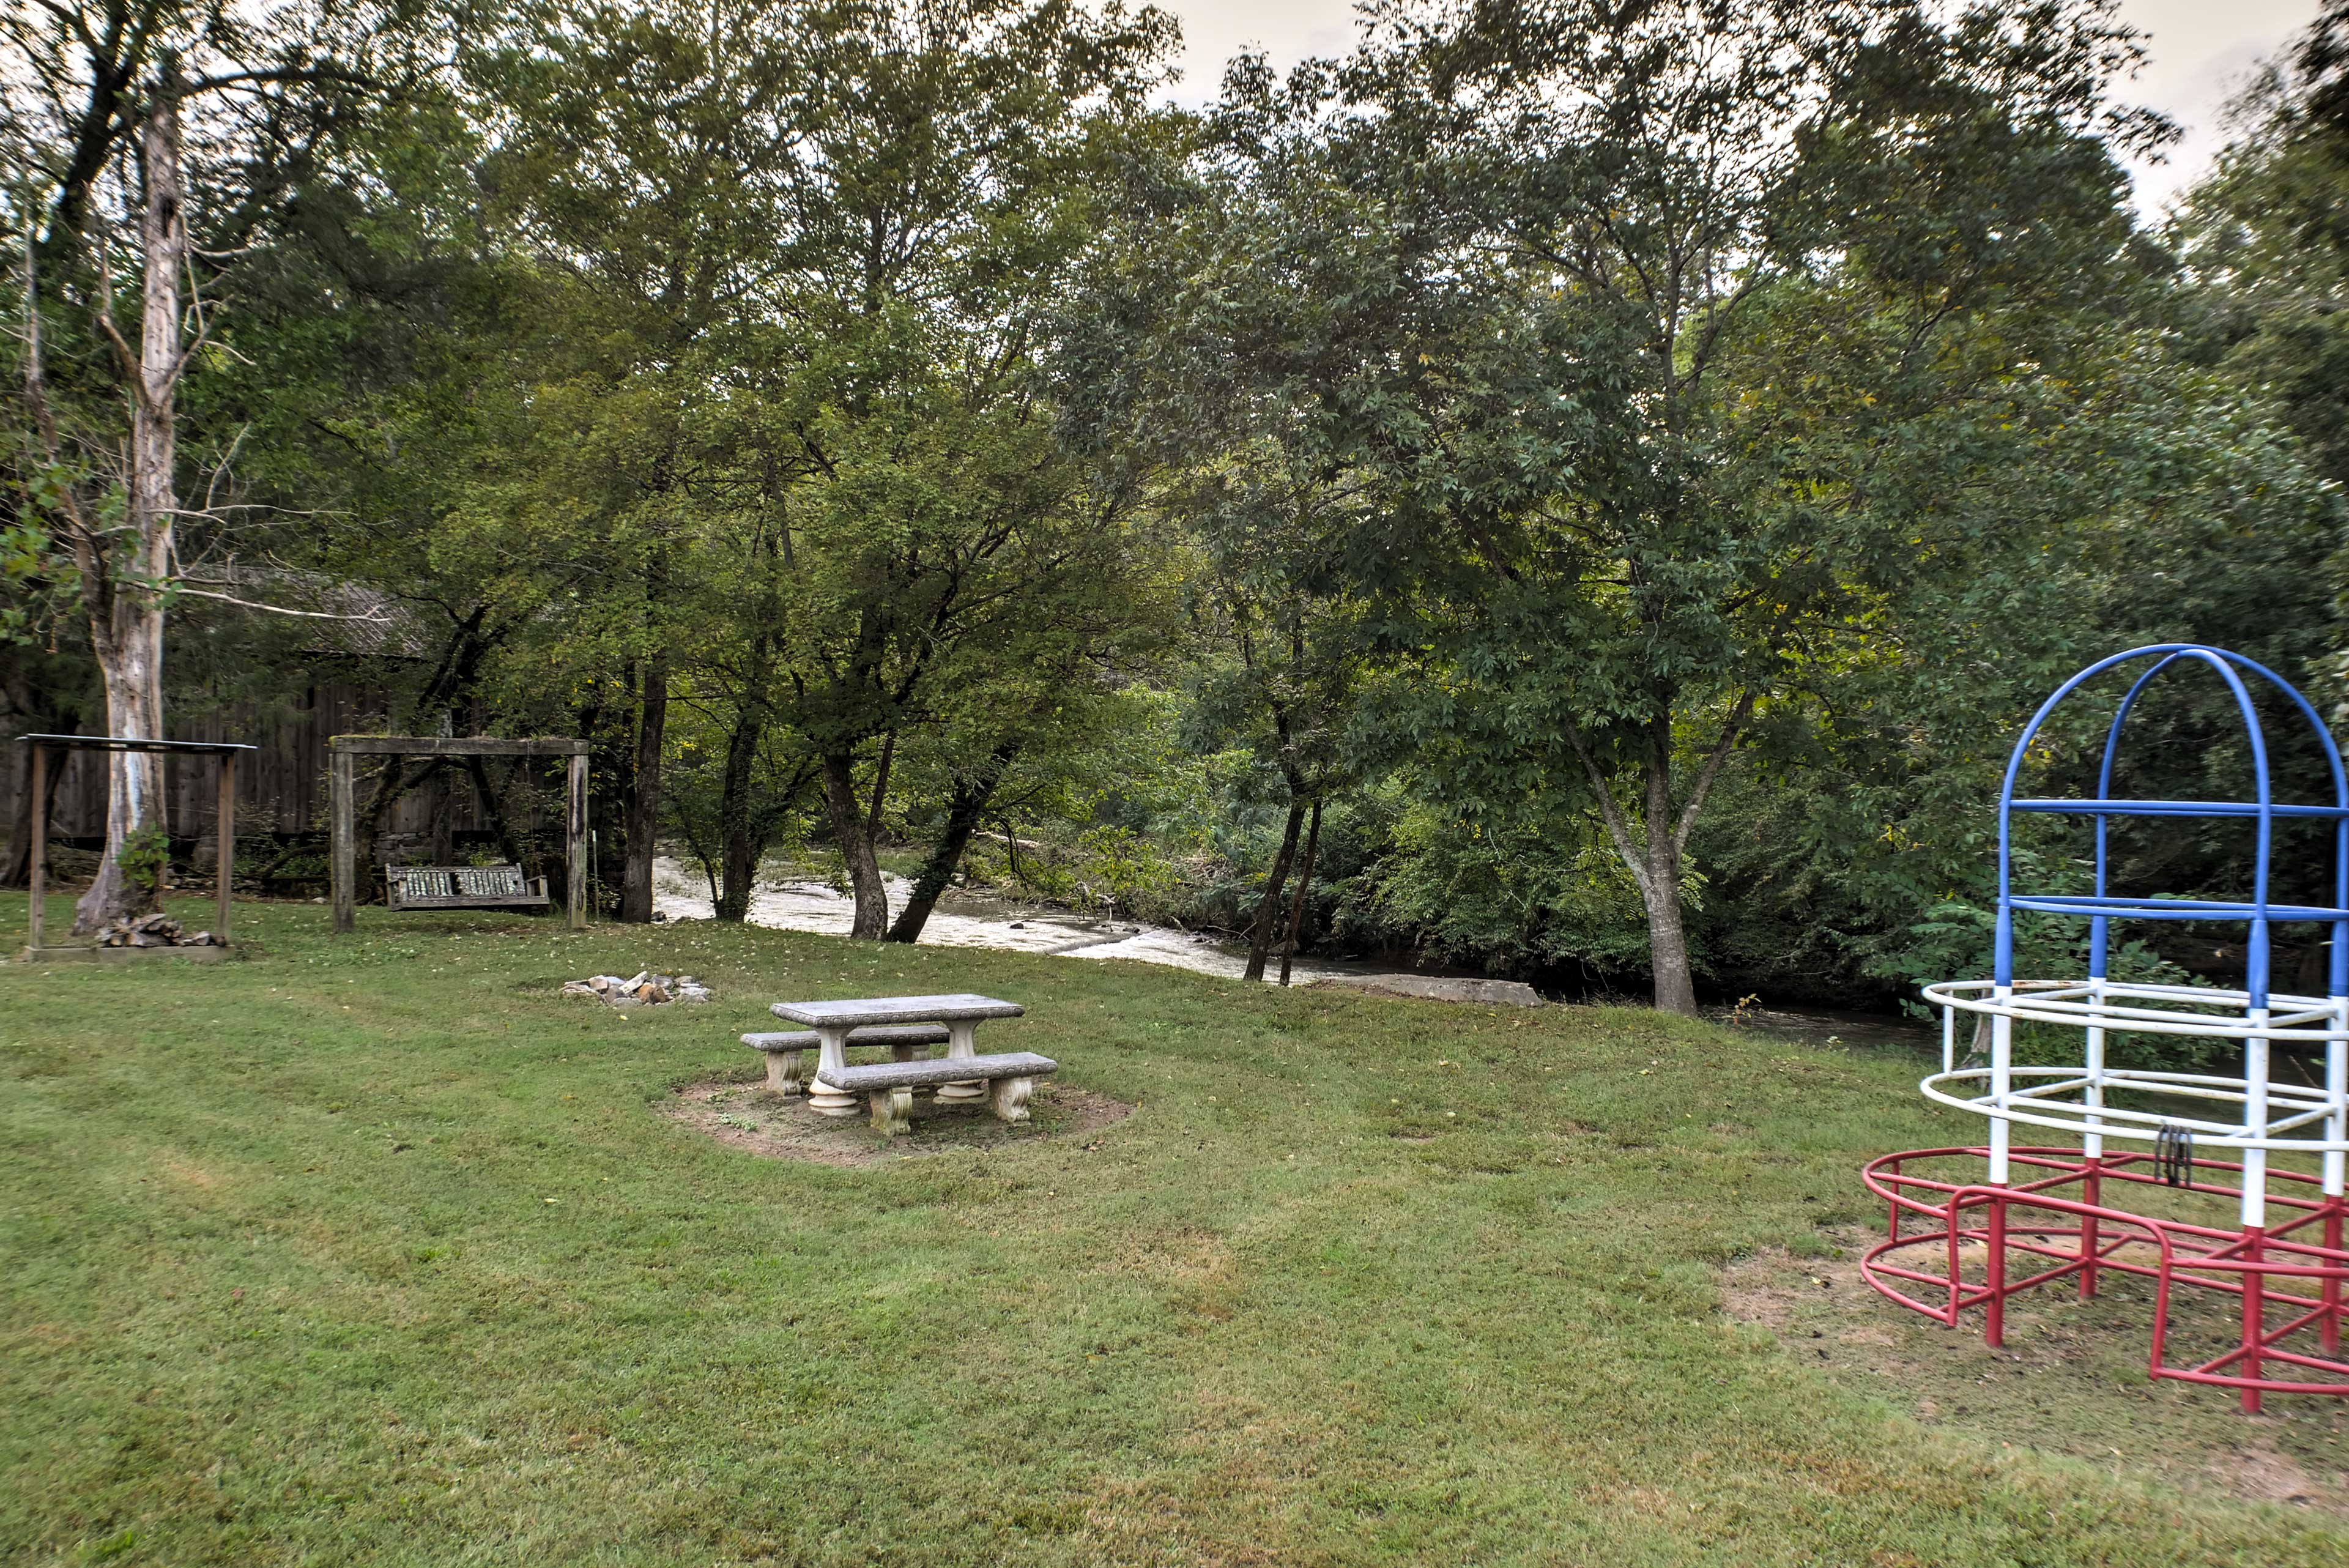 The amenities include the jungle gym, picnic table and swings.